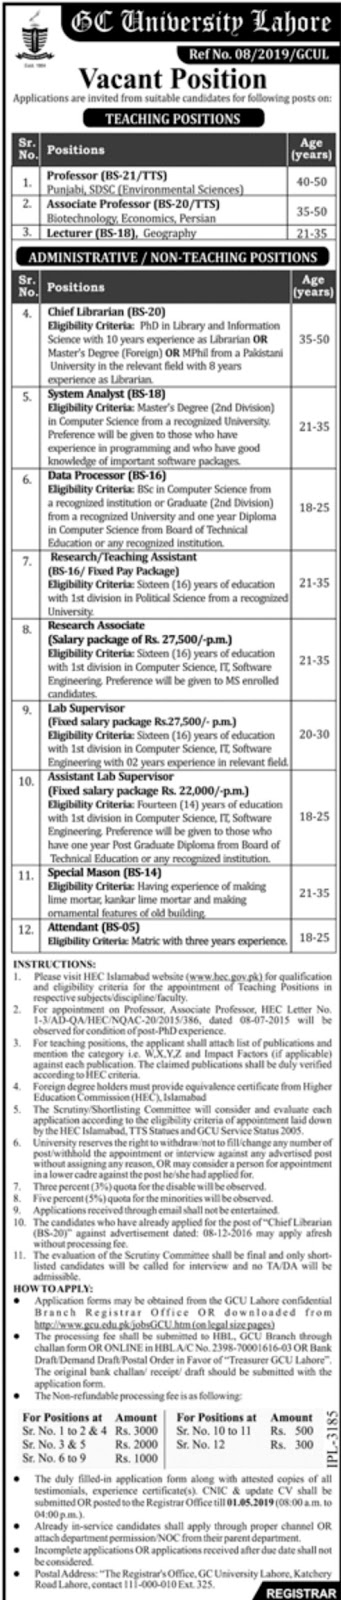 GC University Lahore Jobs 2019 For Teaching Faculty